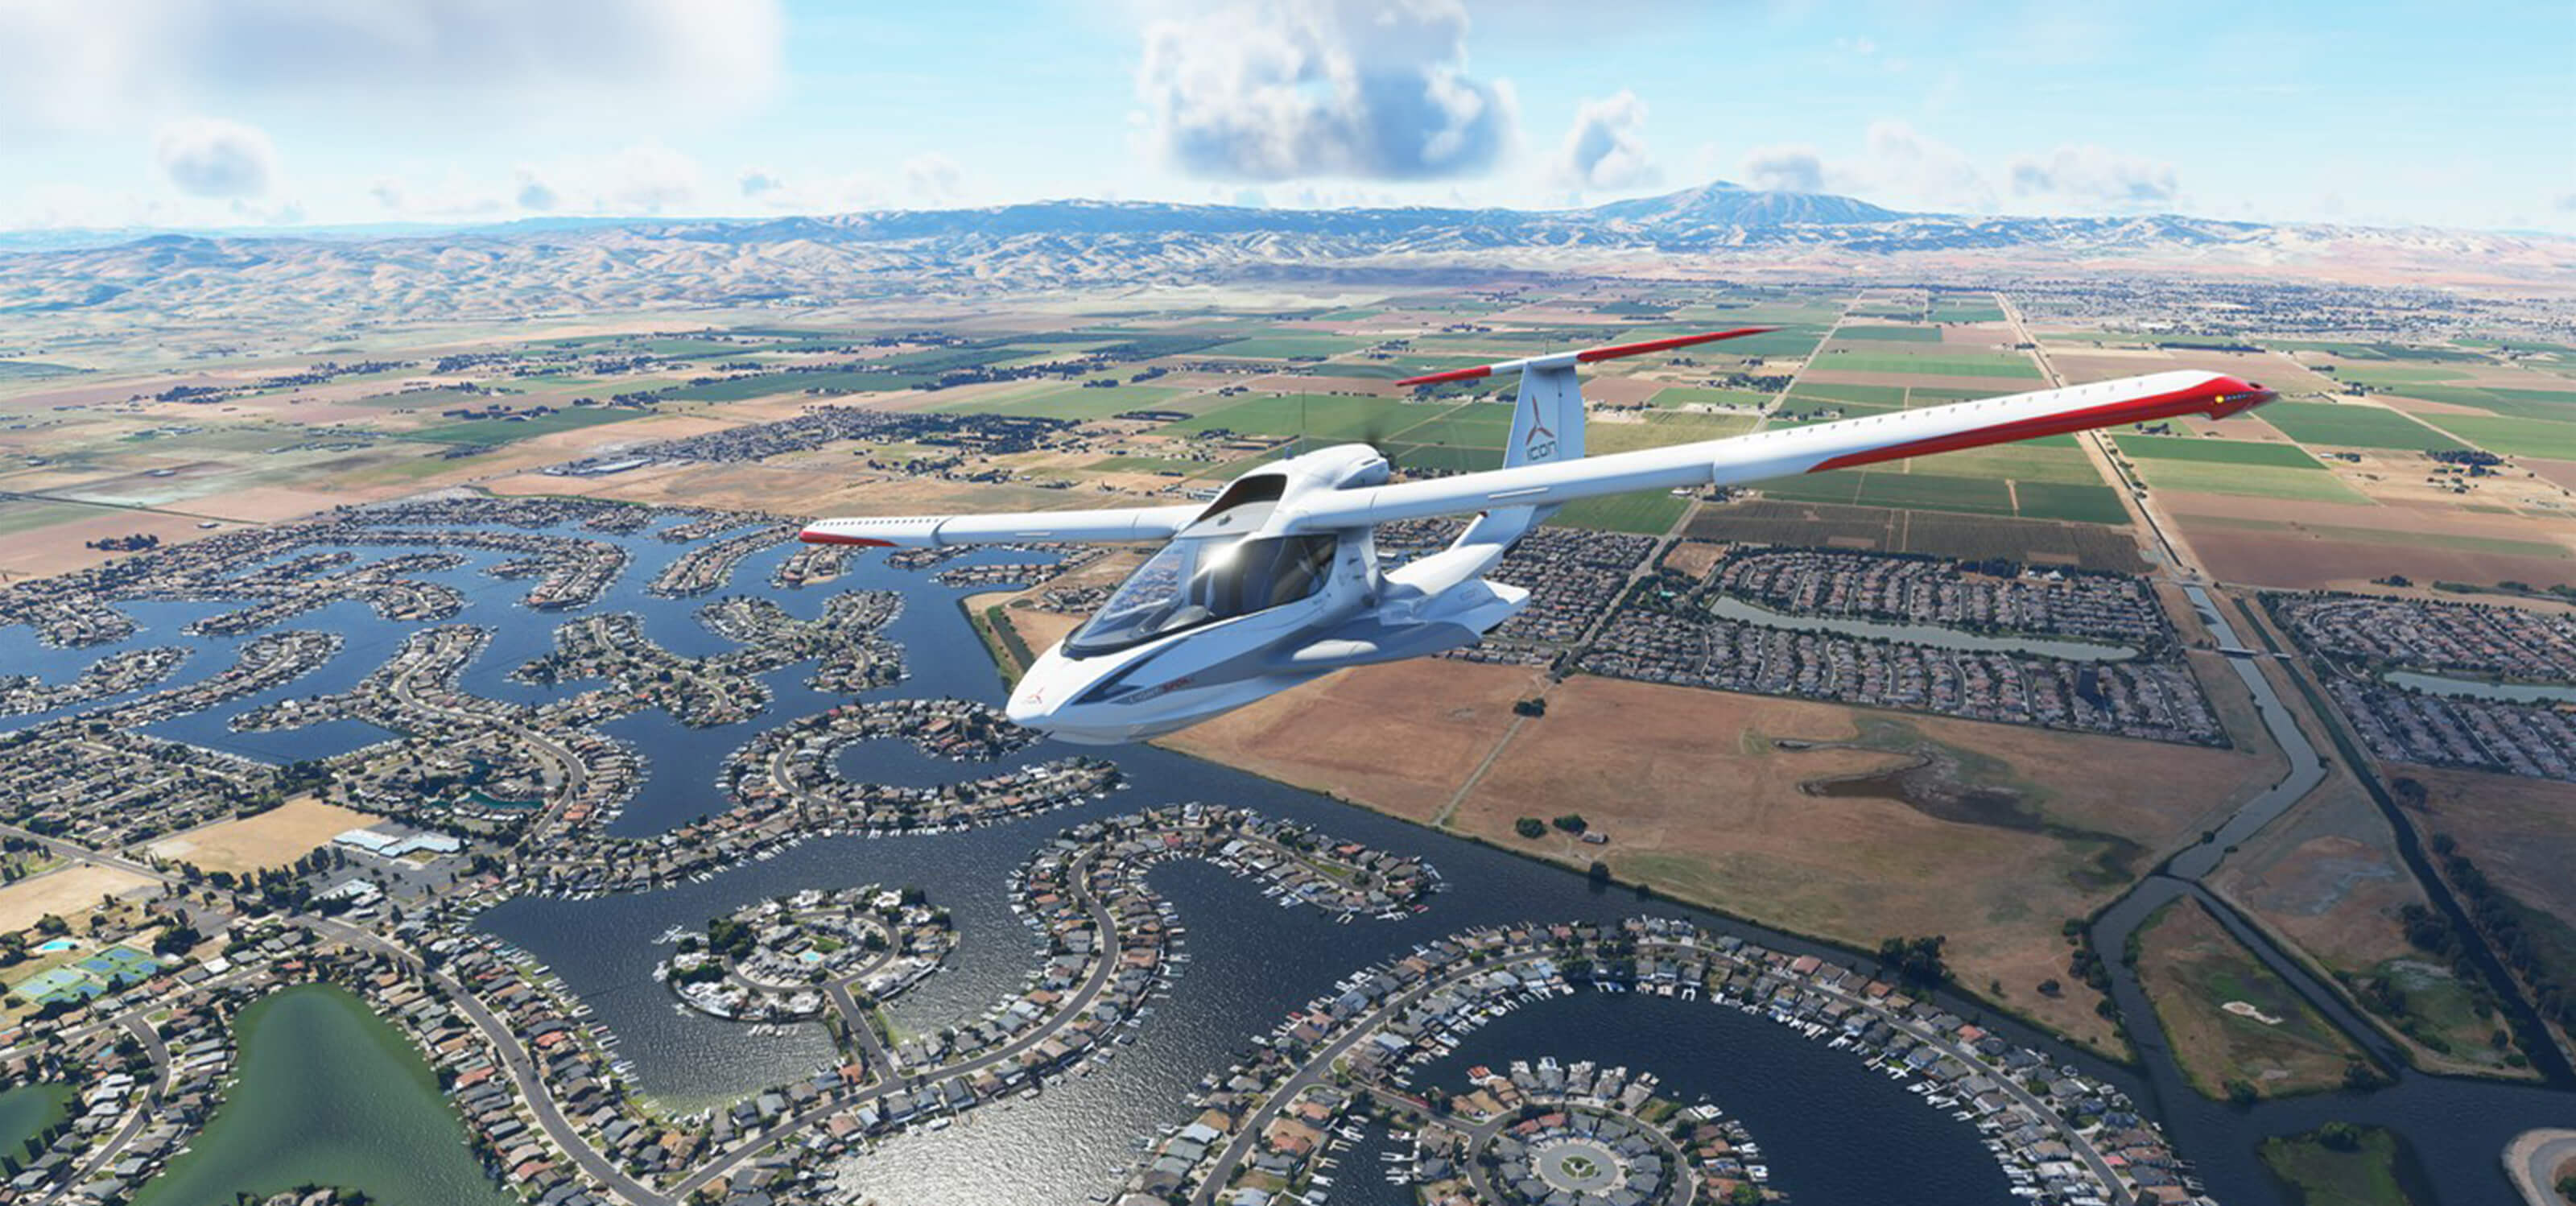 A screenshot from Microsoft Flight Simulator depicting a plane flying over fields and a lake.